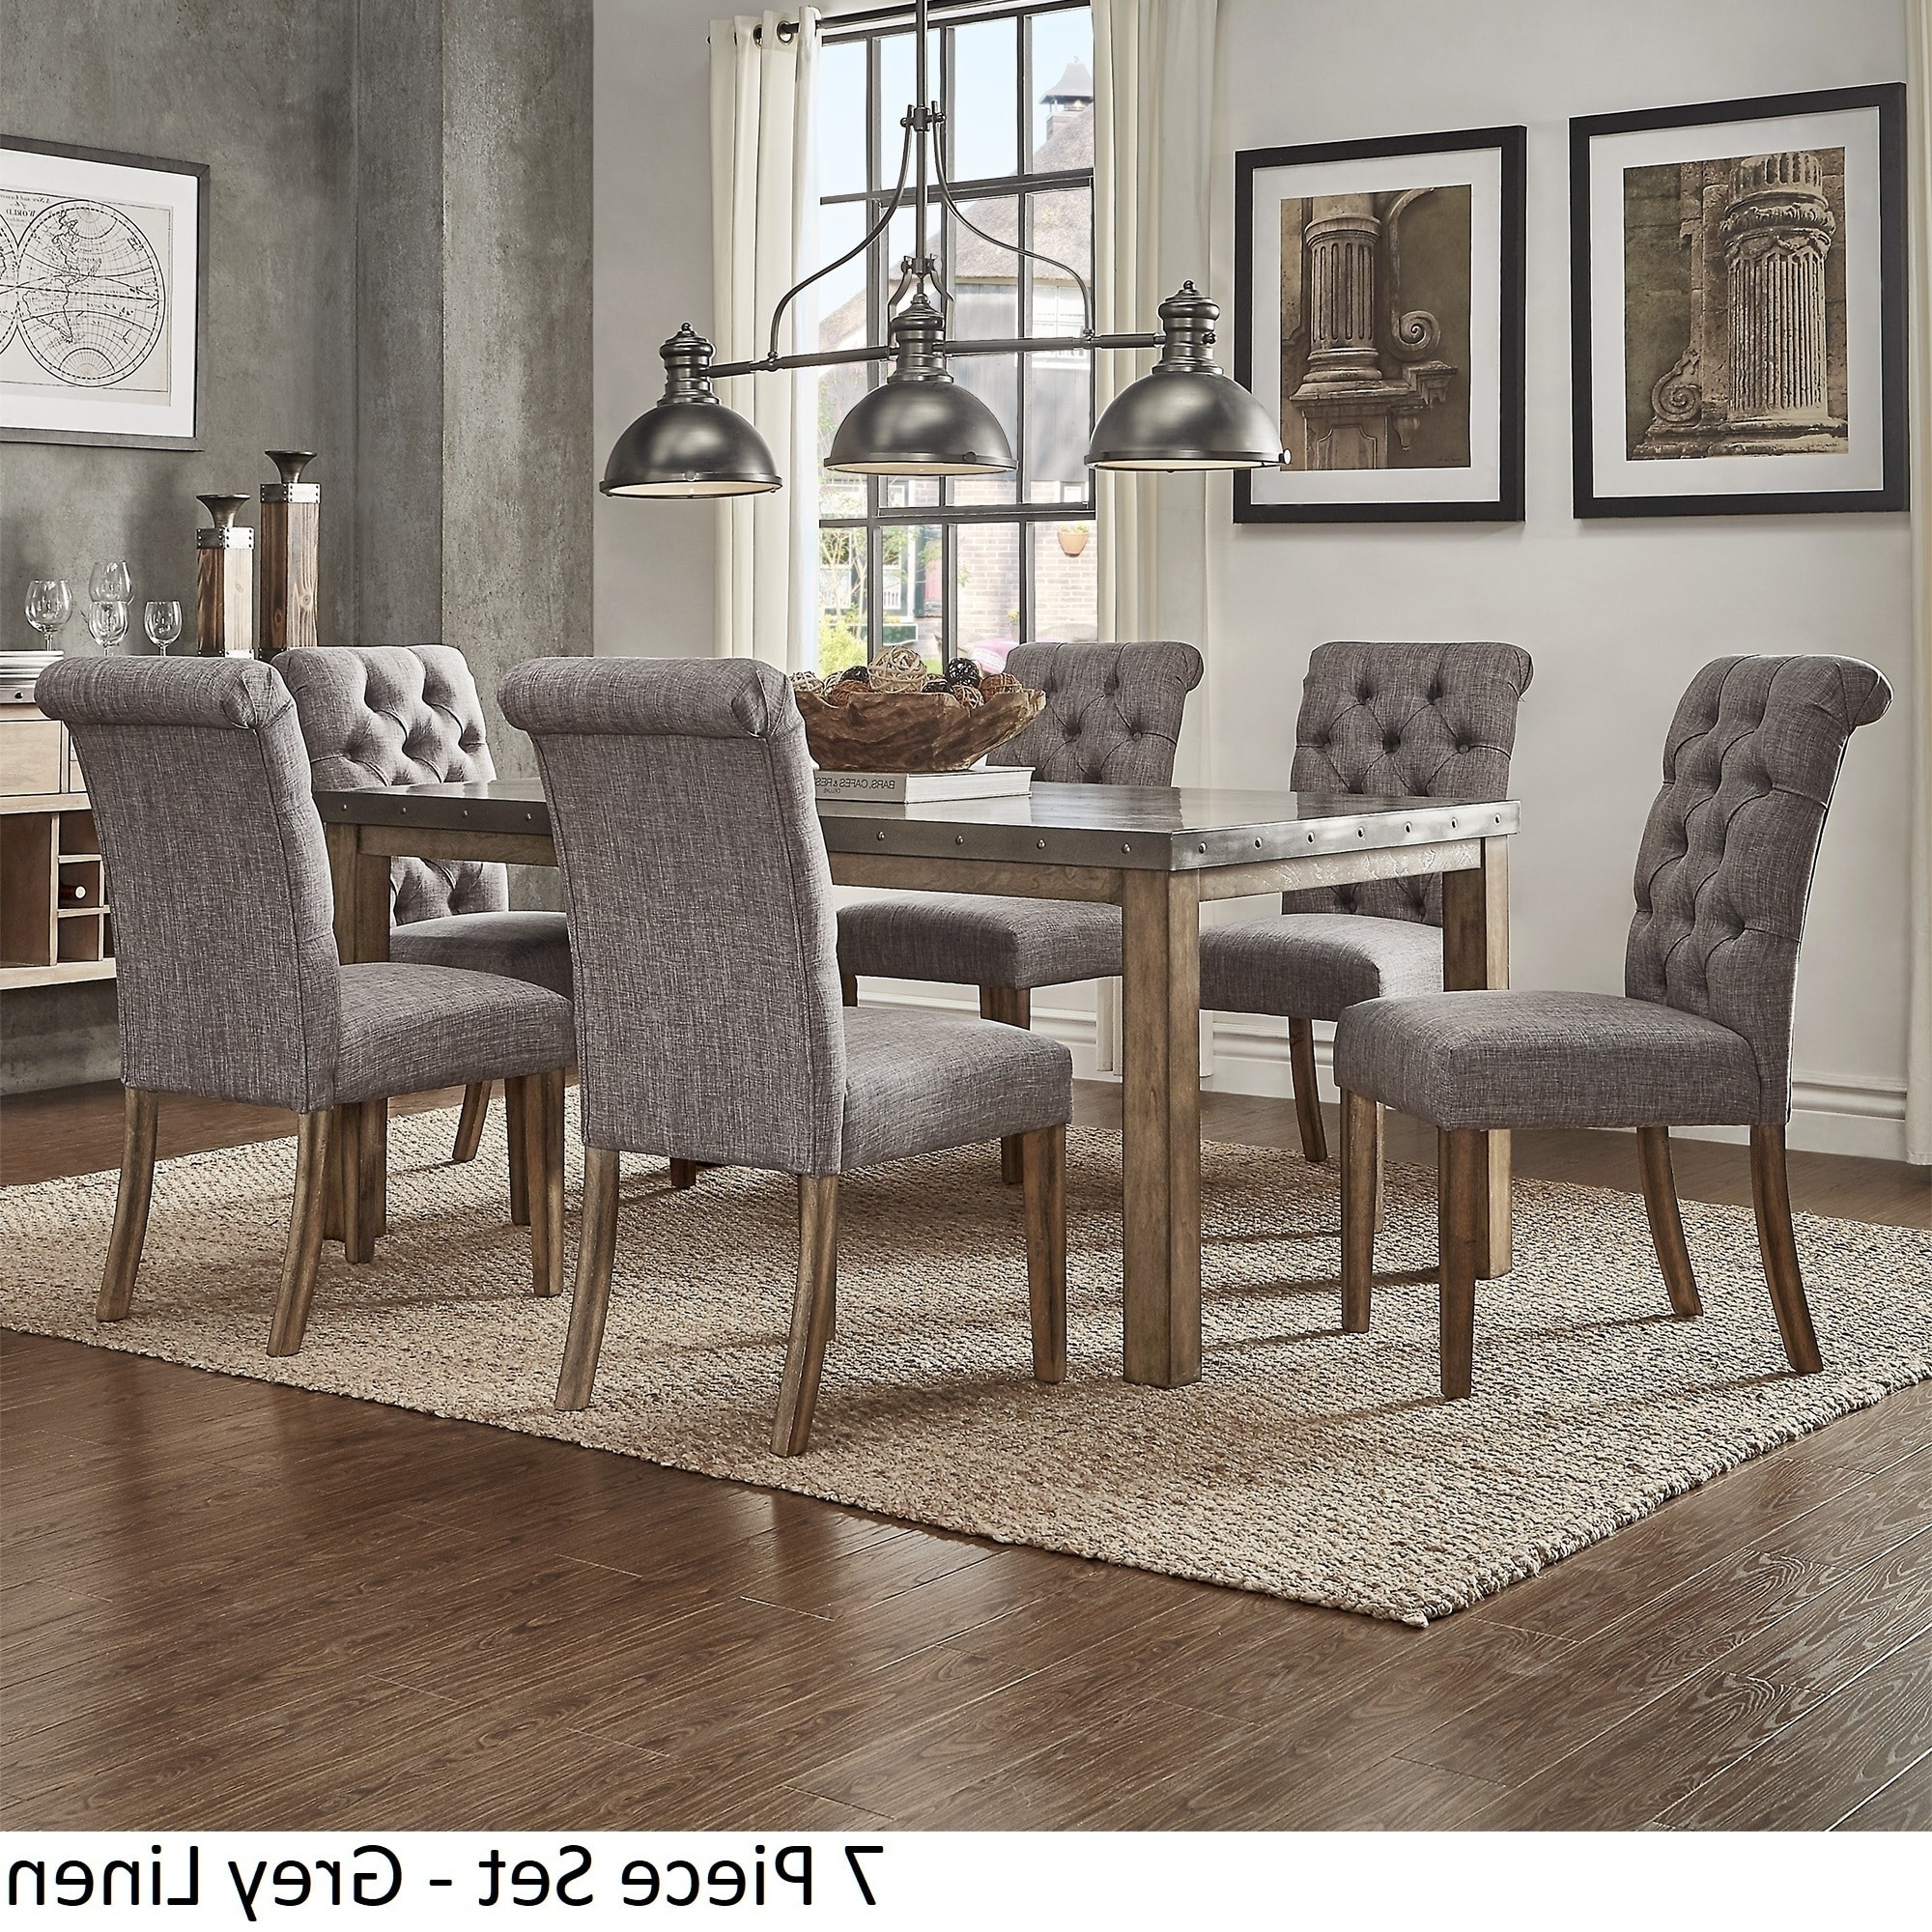 2017 Cassidy Stainless Steel Top Rectangle Dining Table Setinspire Q Regarding Candice Ii 6 Piece Extension Rectangle Dining Sets (View 11 of 25)